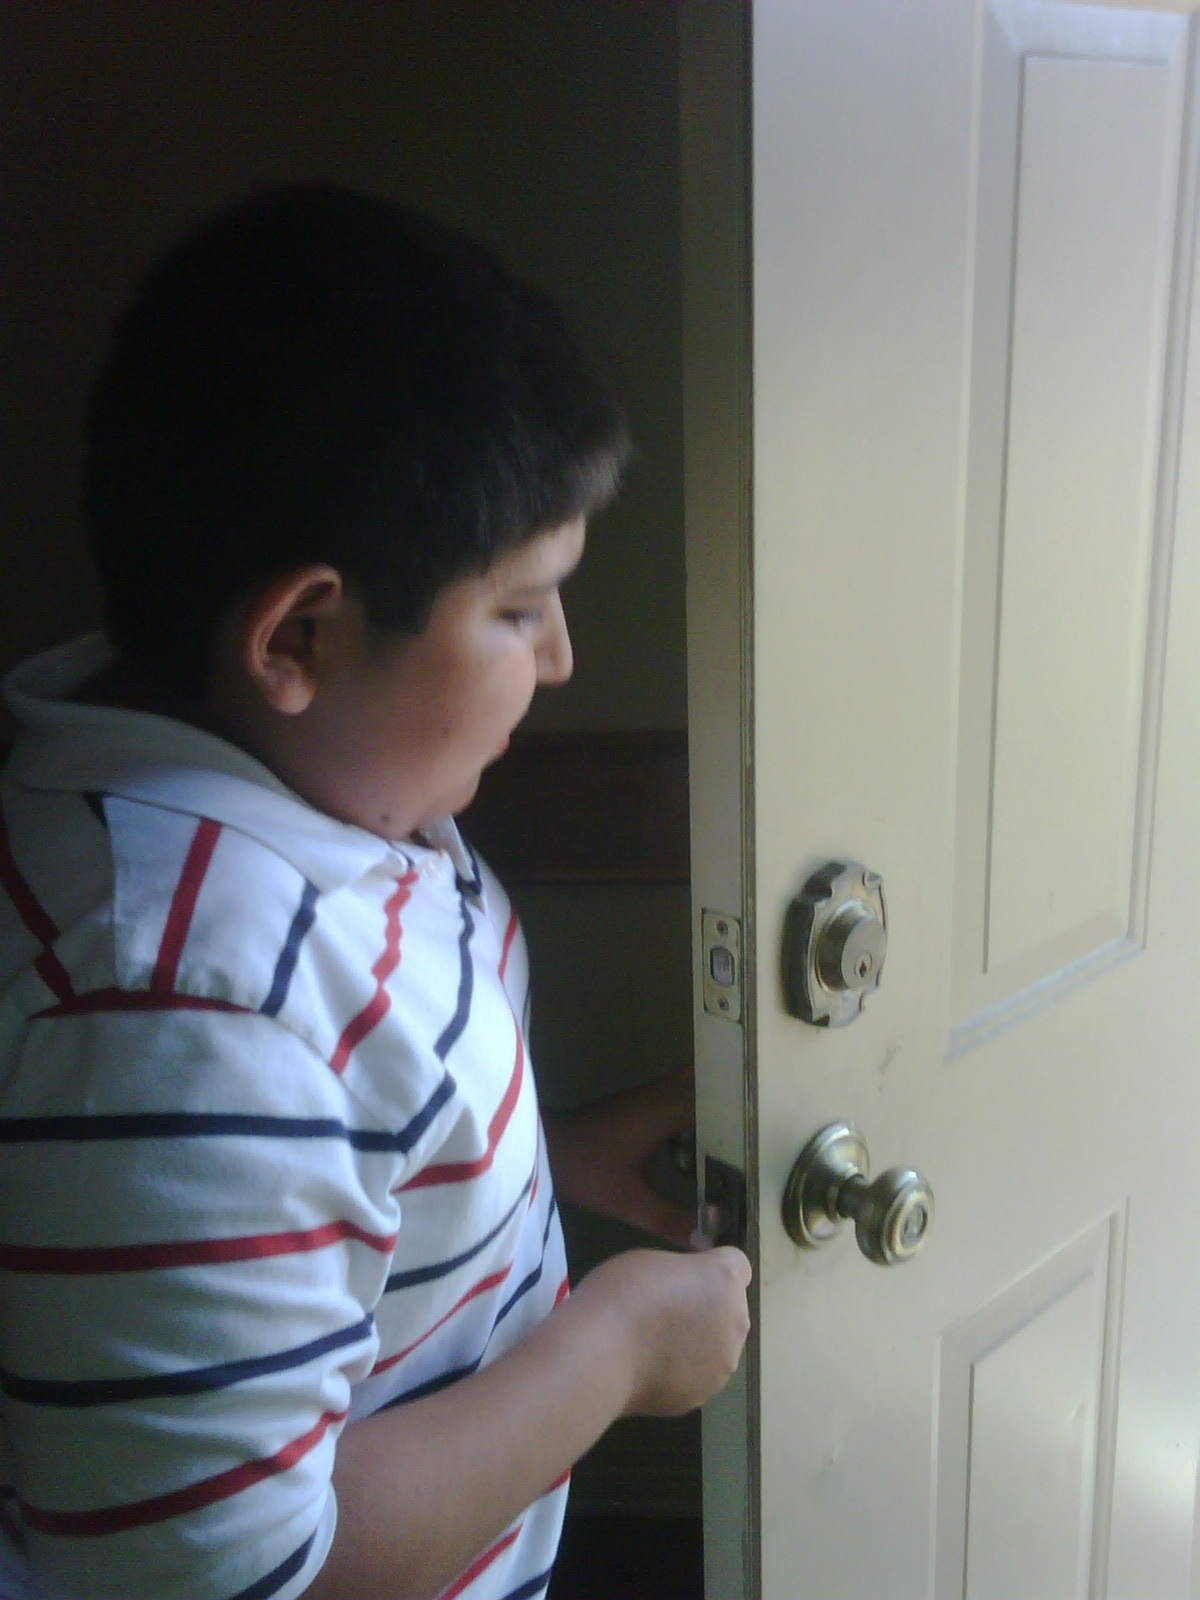 Buddy student fixing a doorknob